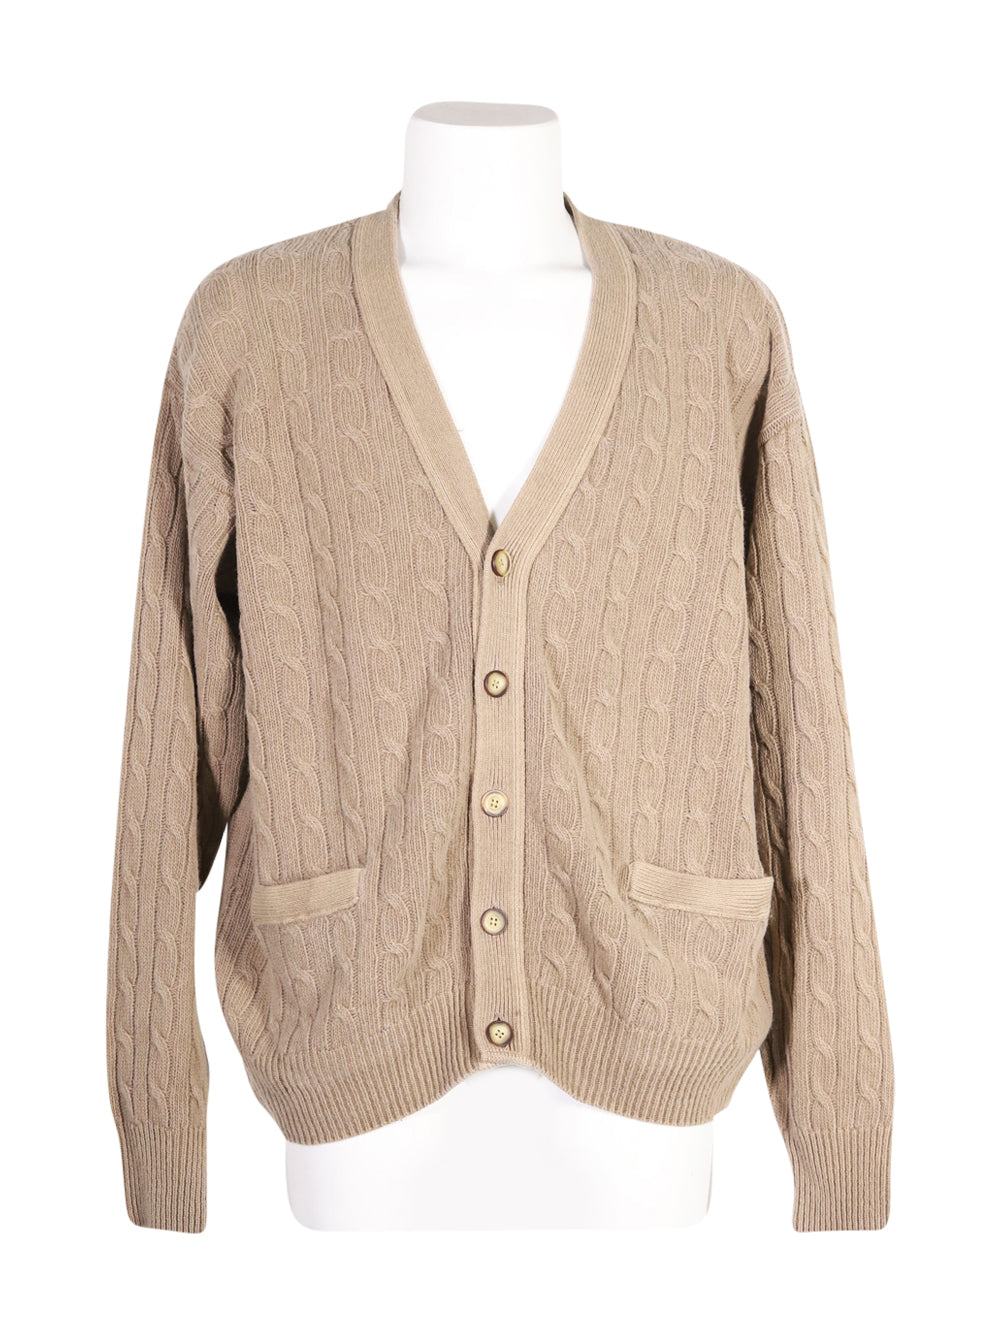 Front photo of Preloved wool & co Brown Man's cardigan - size 38/M